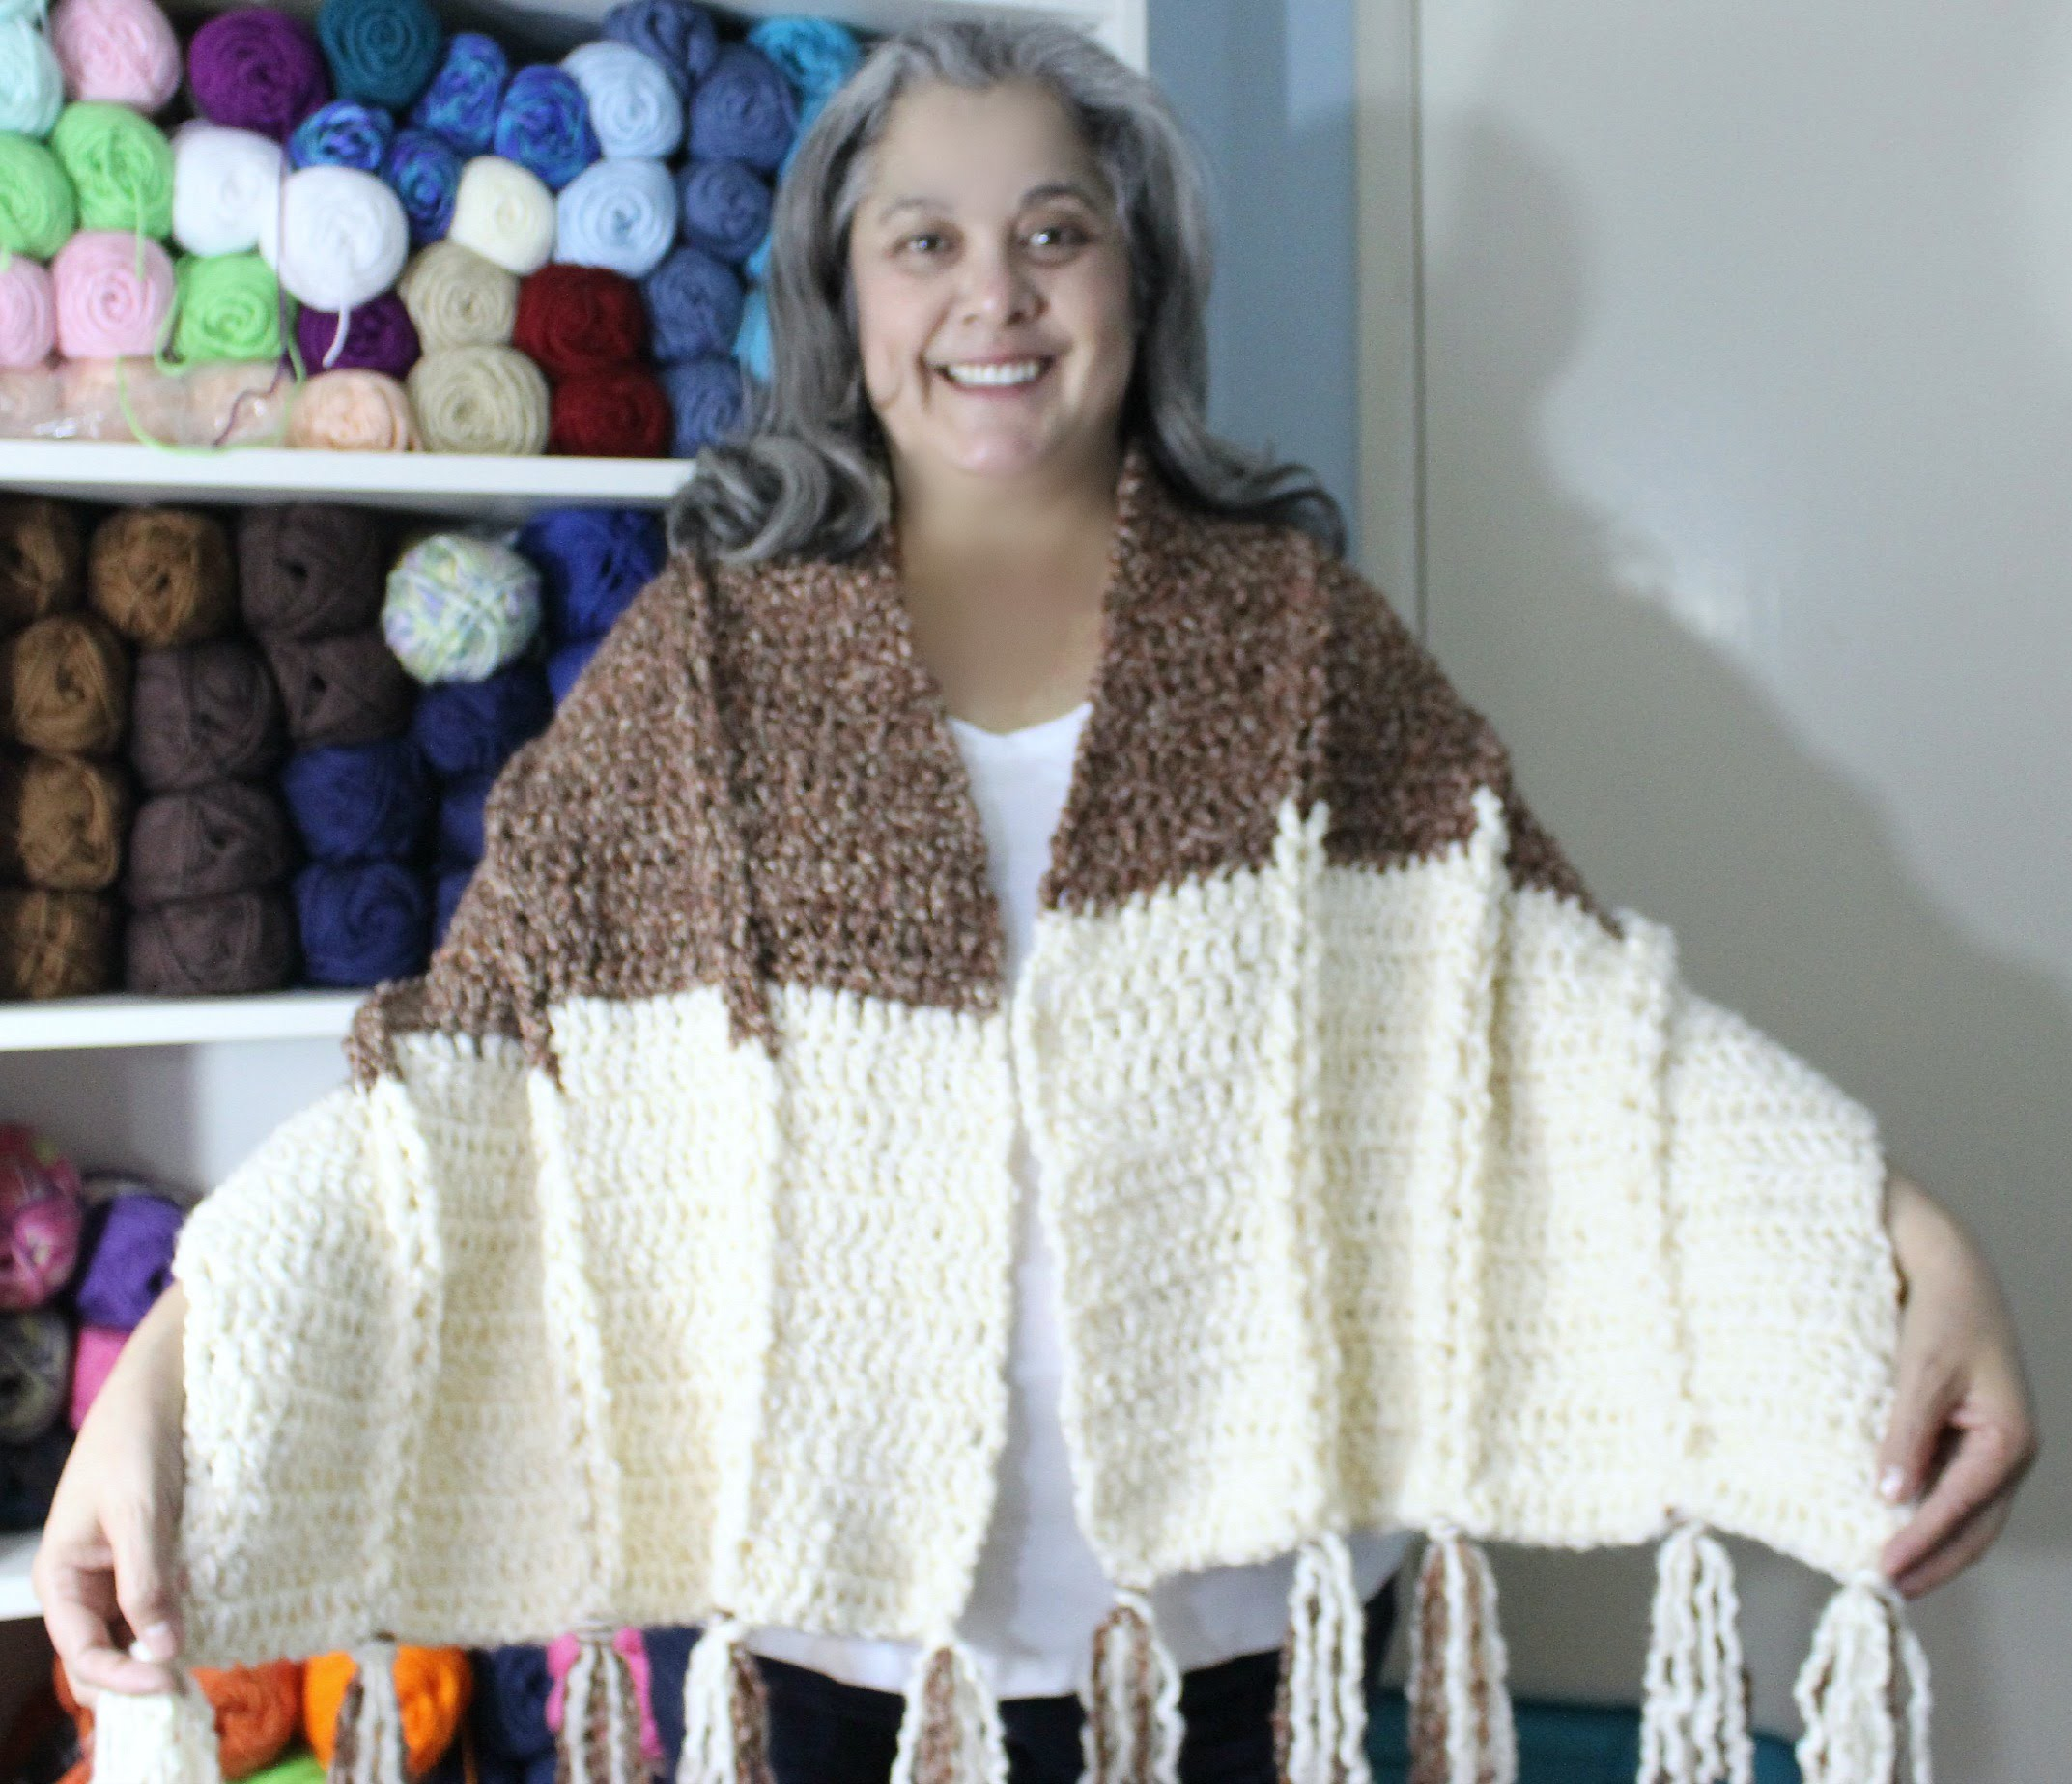 #Crochet - Jacobs Ladder shawl